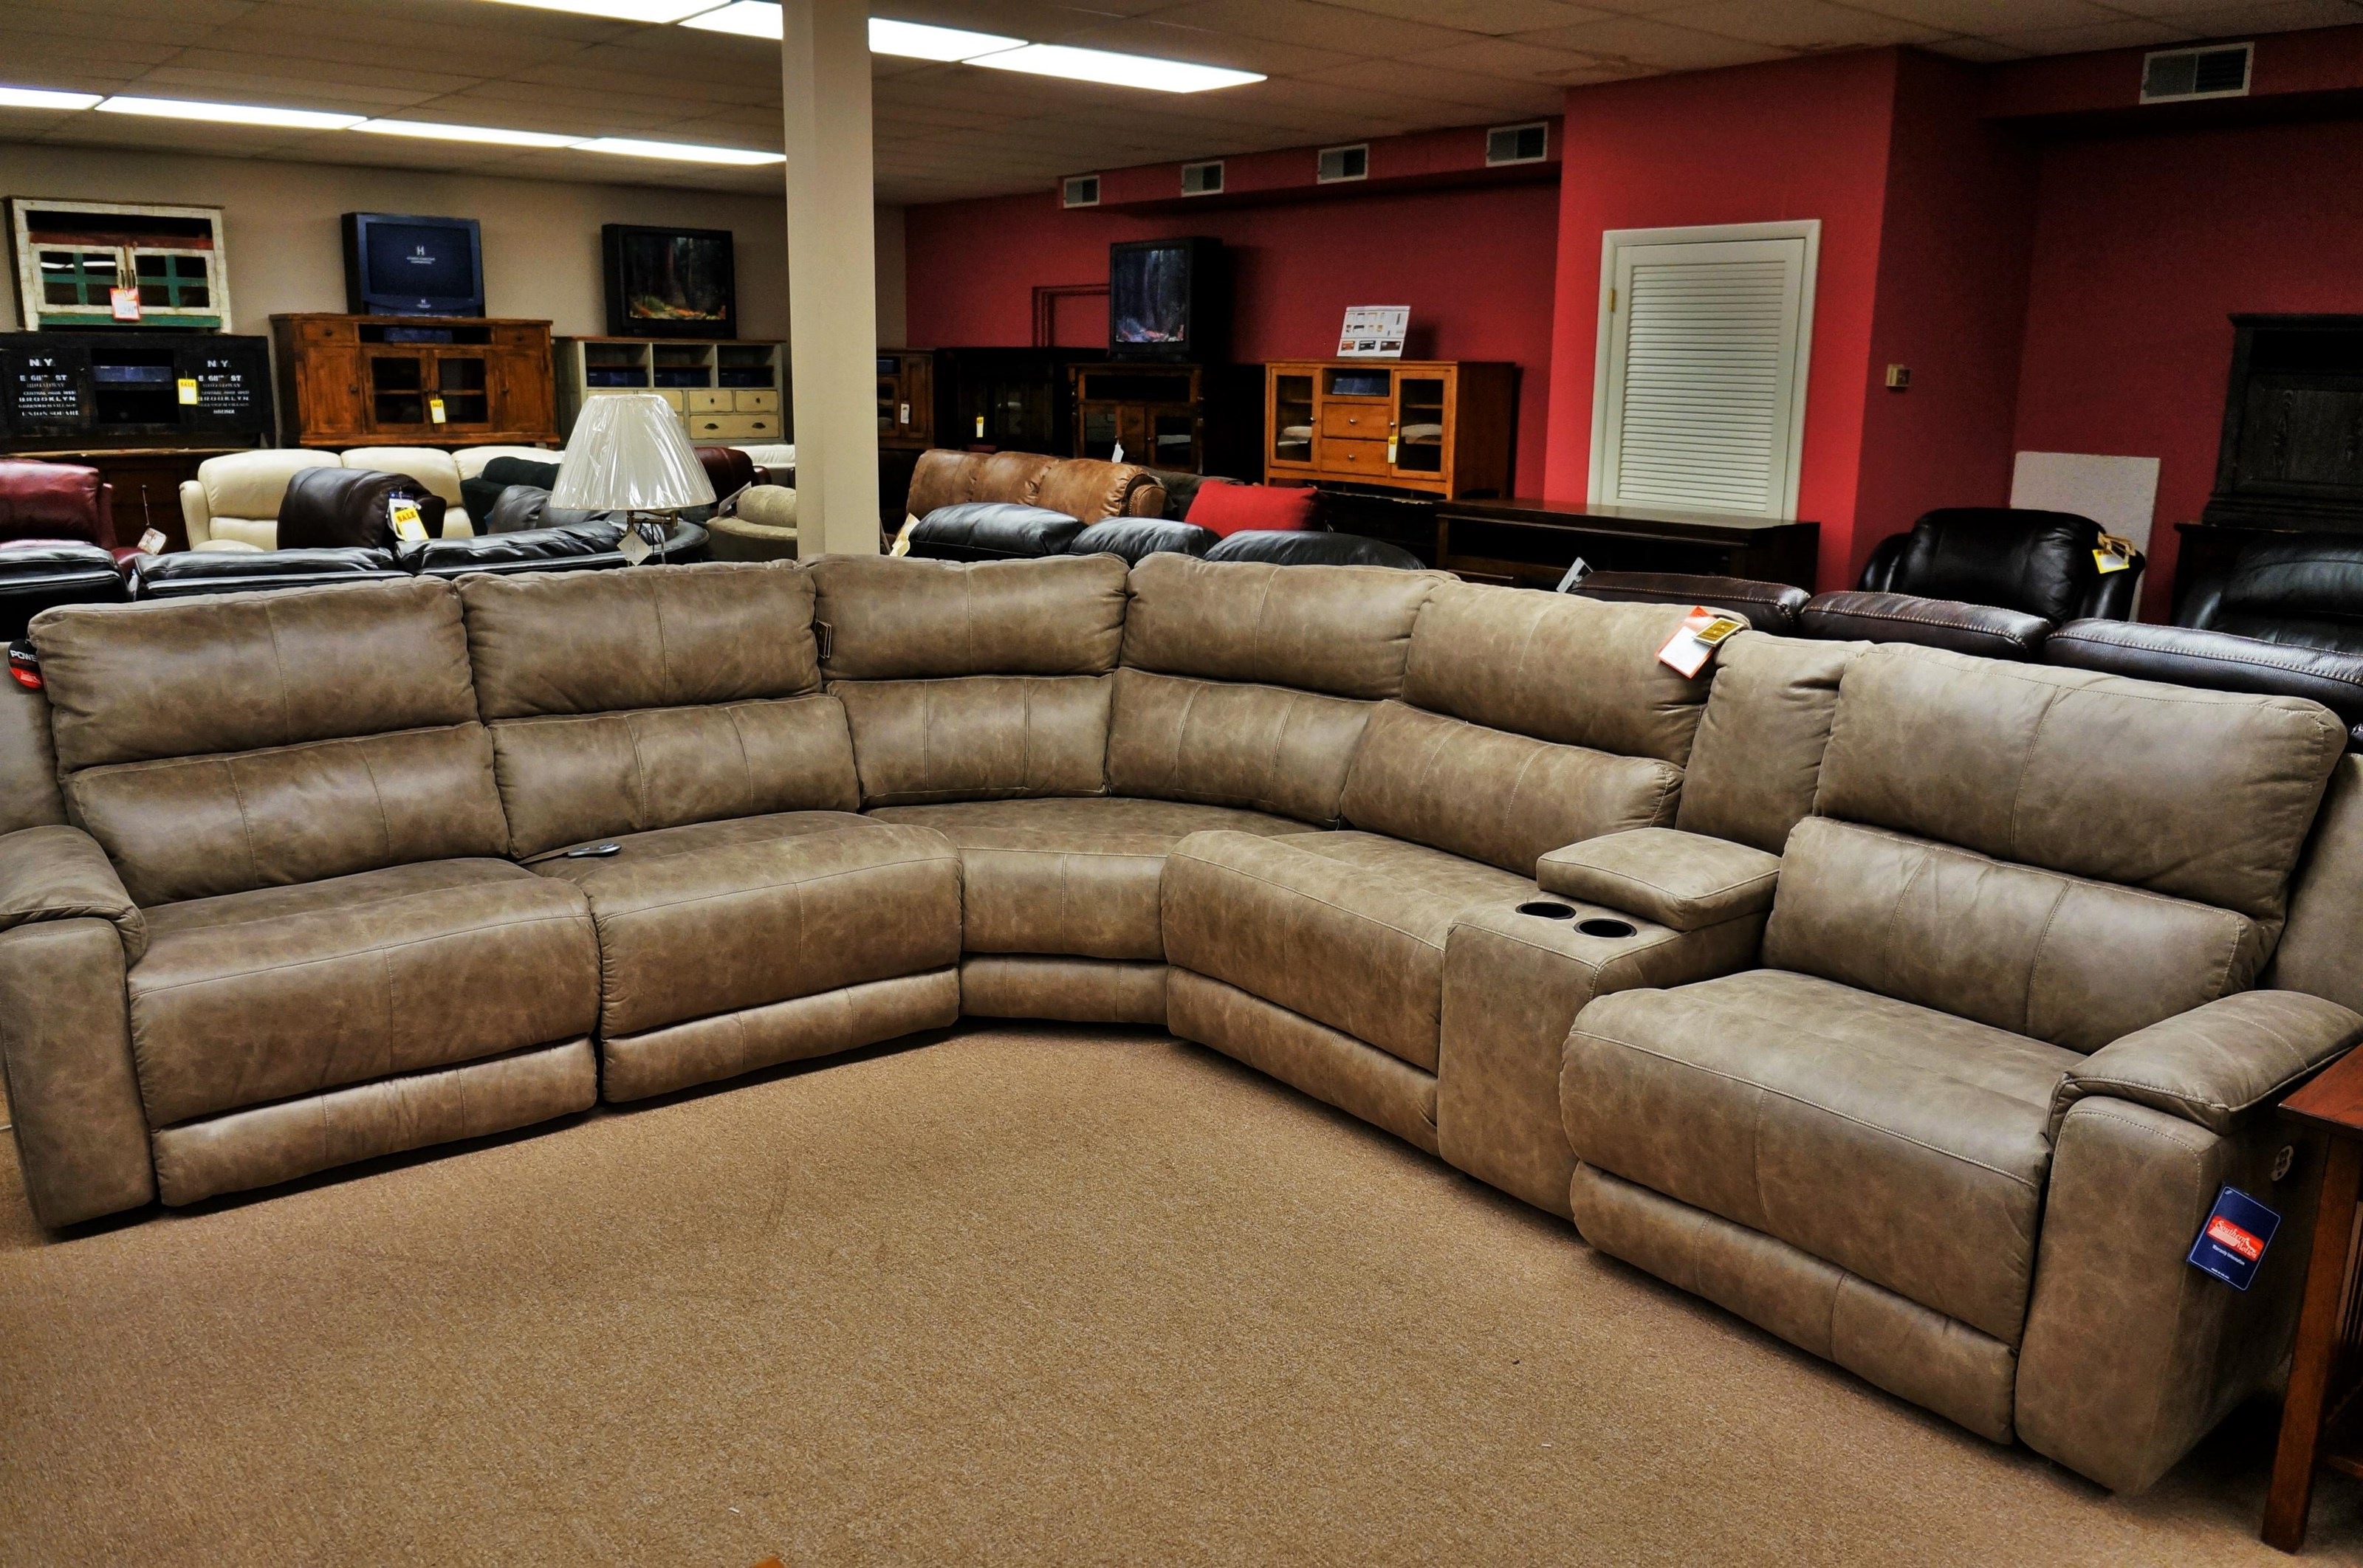 Reclining Sectional Sofa with 5 Seats and Power Headrests